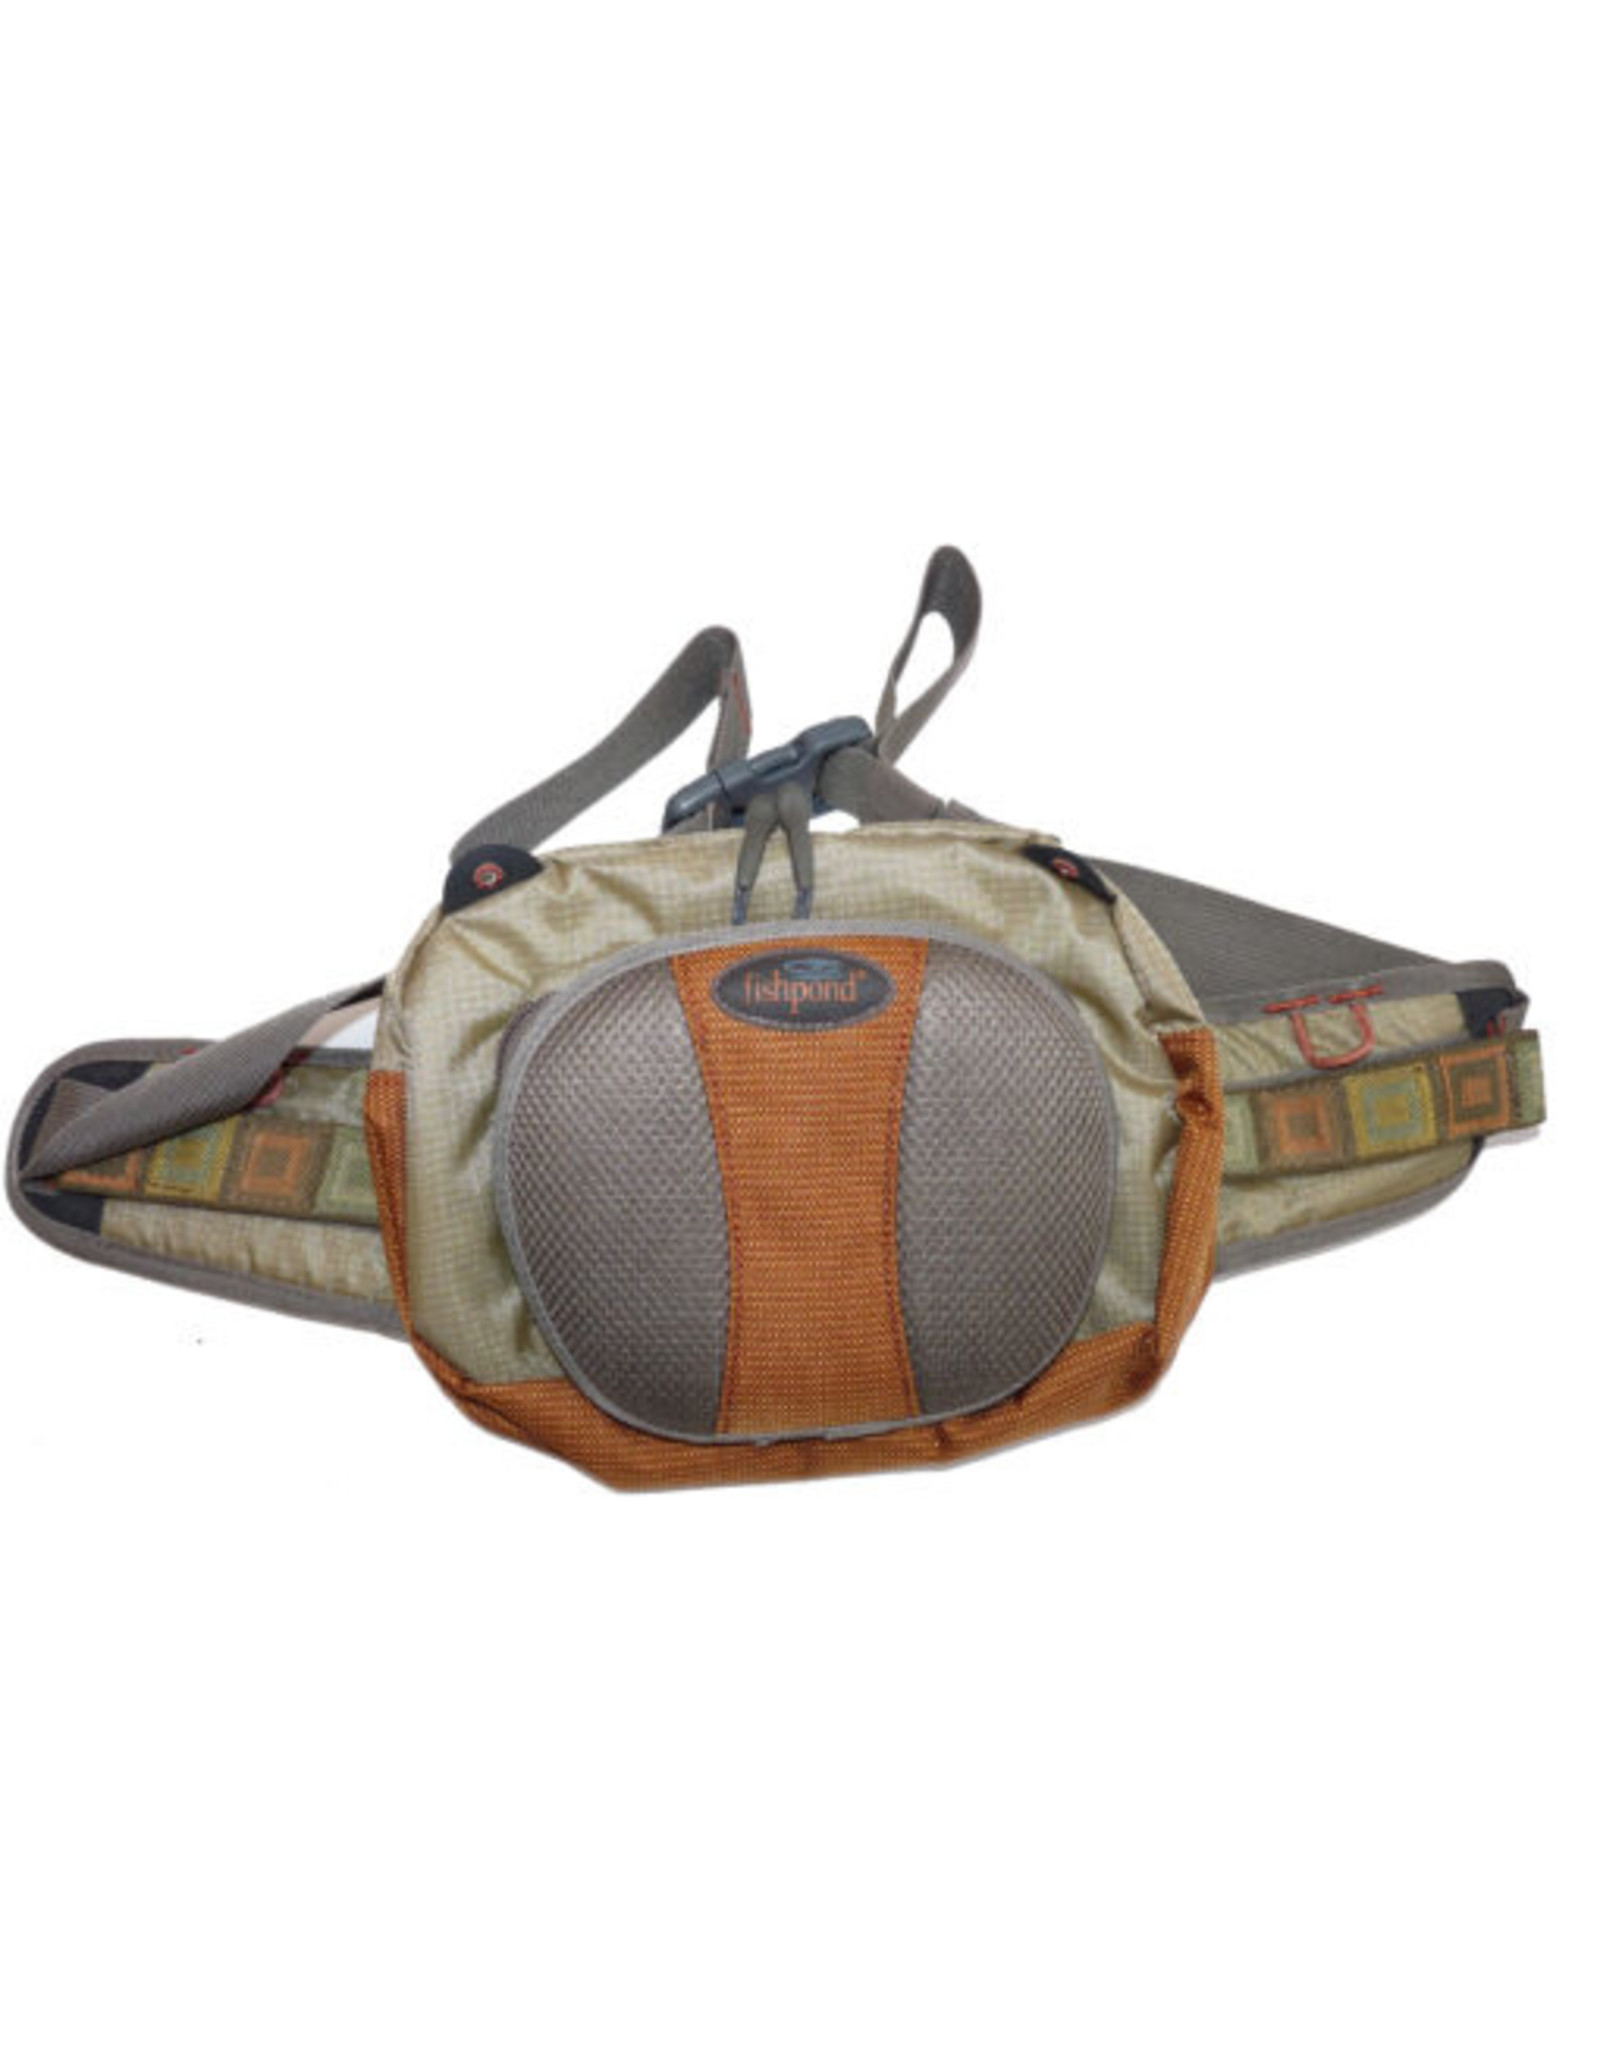 FISHPOND Fishpond Arroyo Chest Pack - Driftwood